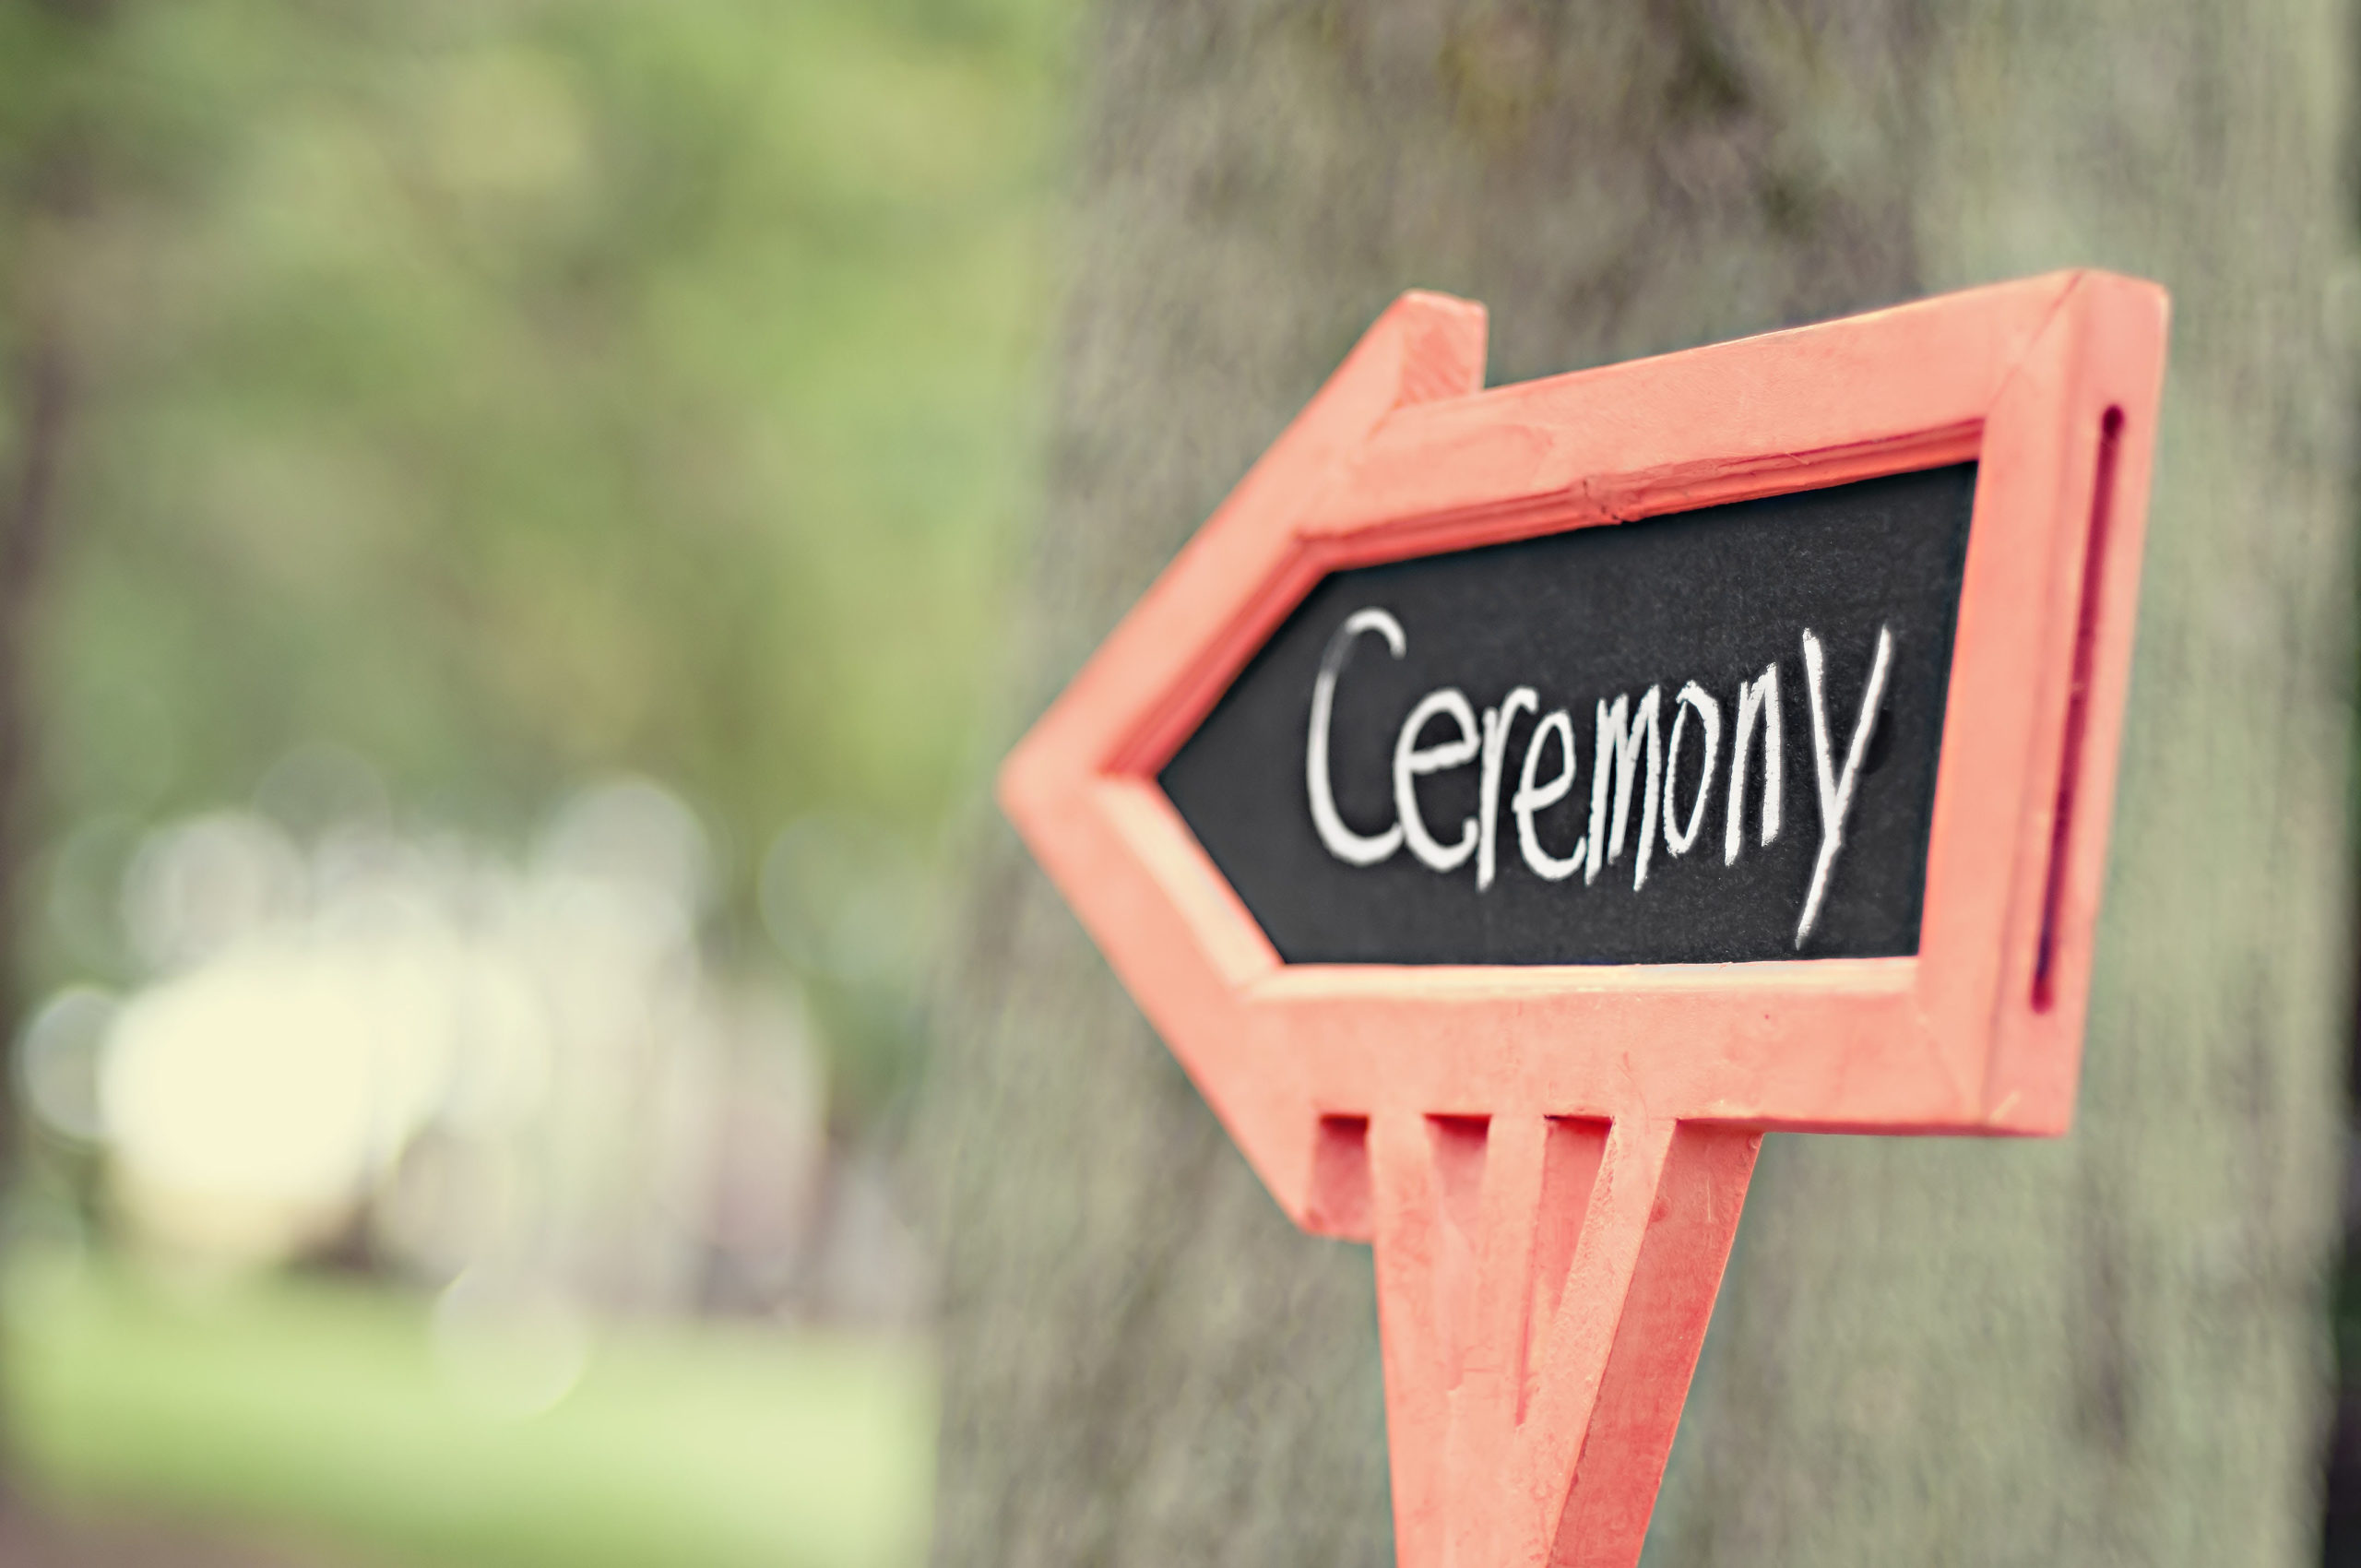 HOW TO CHOOSE A CEREMONY VENUE